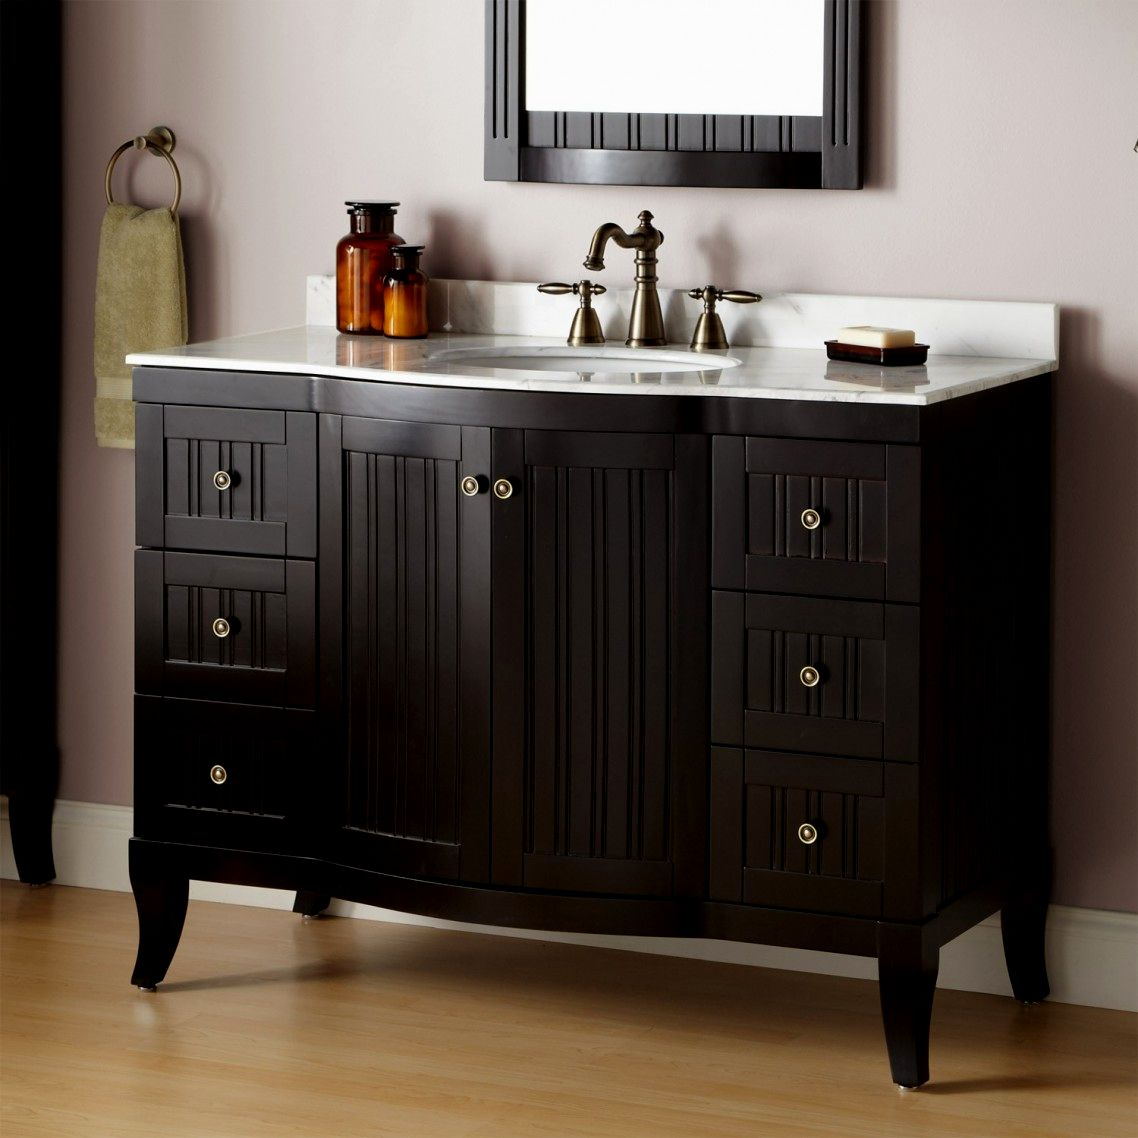 fresh 36 inch bathroom vanity collection-Superb 36 Inch Bathroom Vanity Inspiration